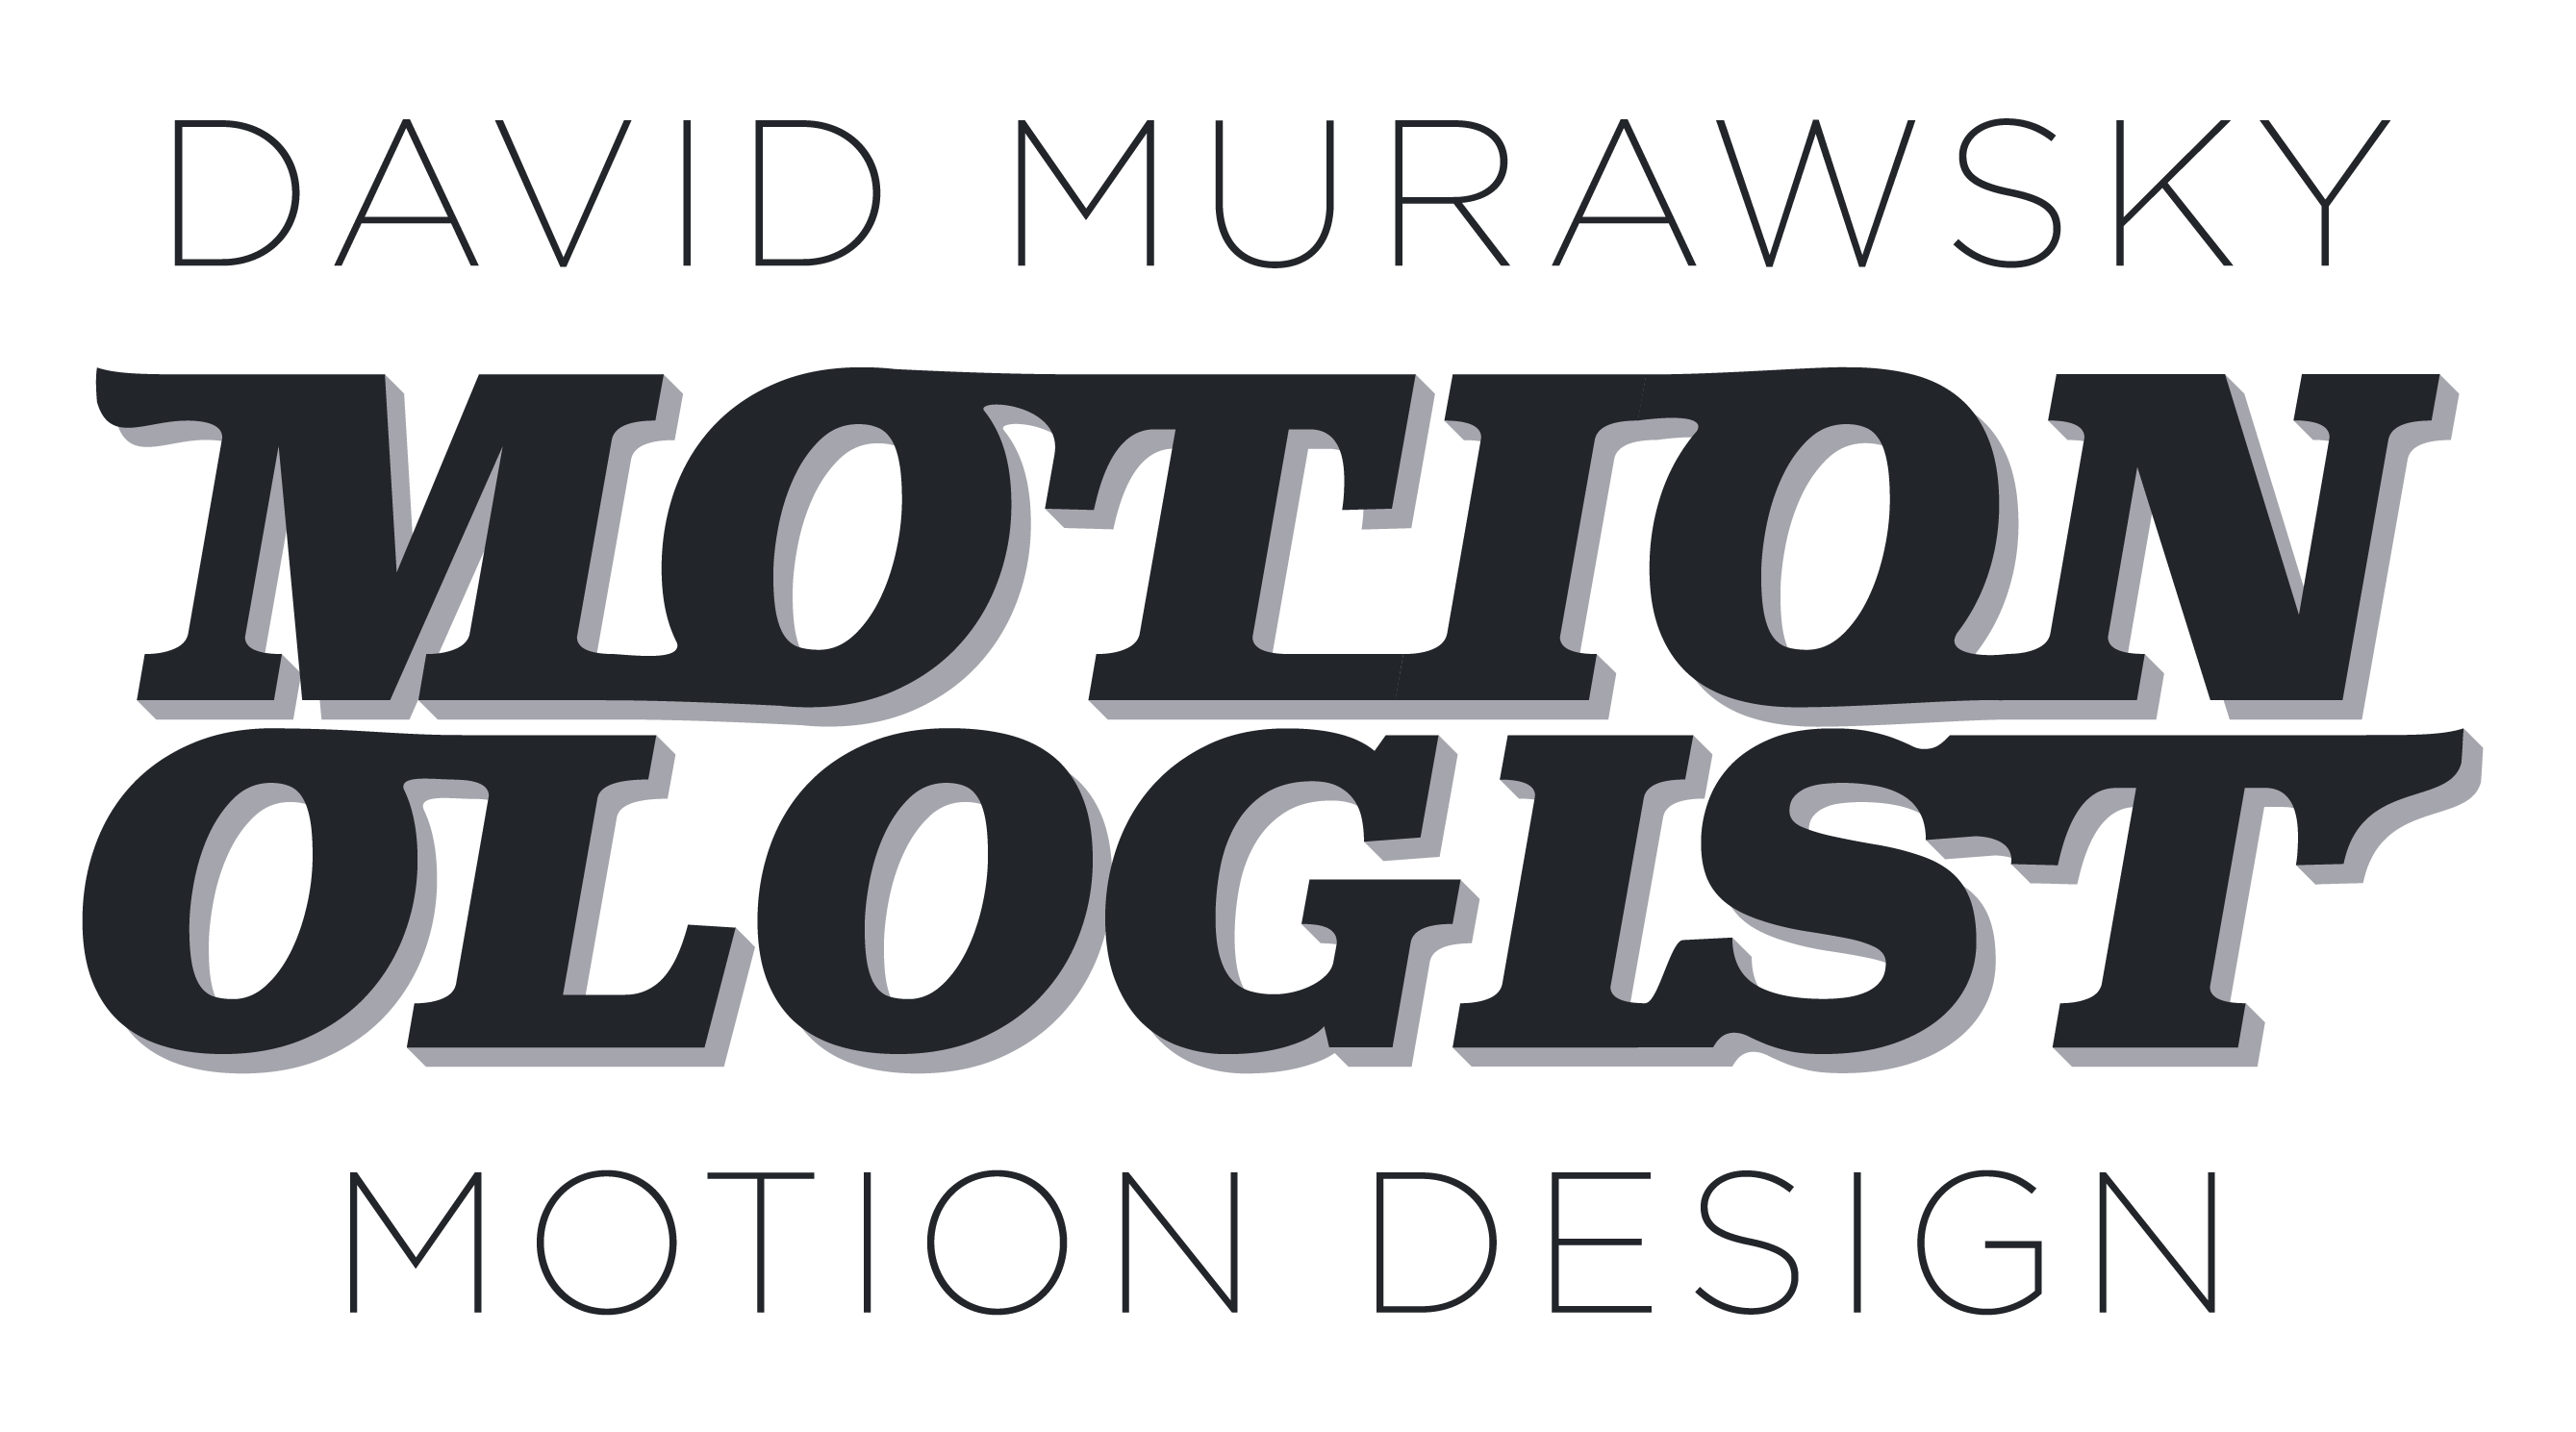 David Murawsky Motion Design